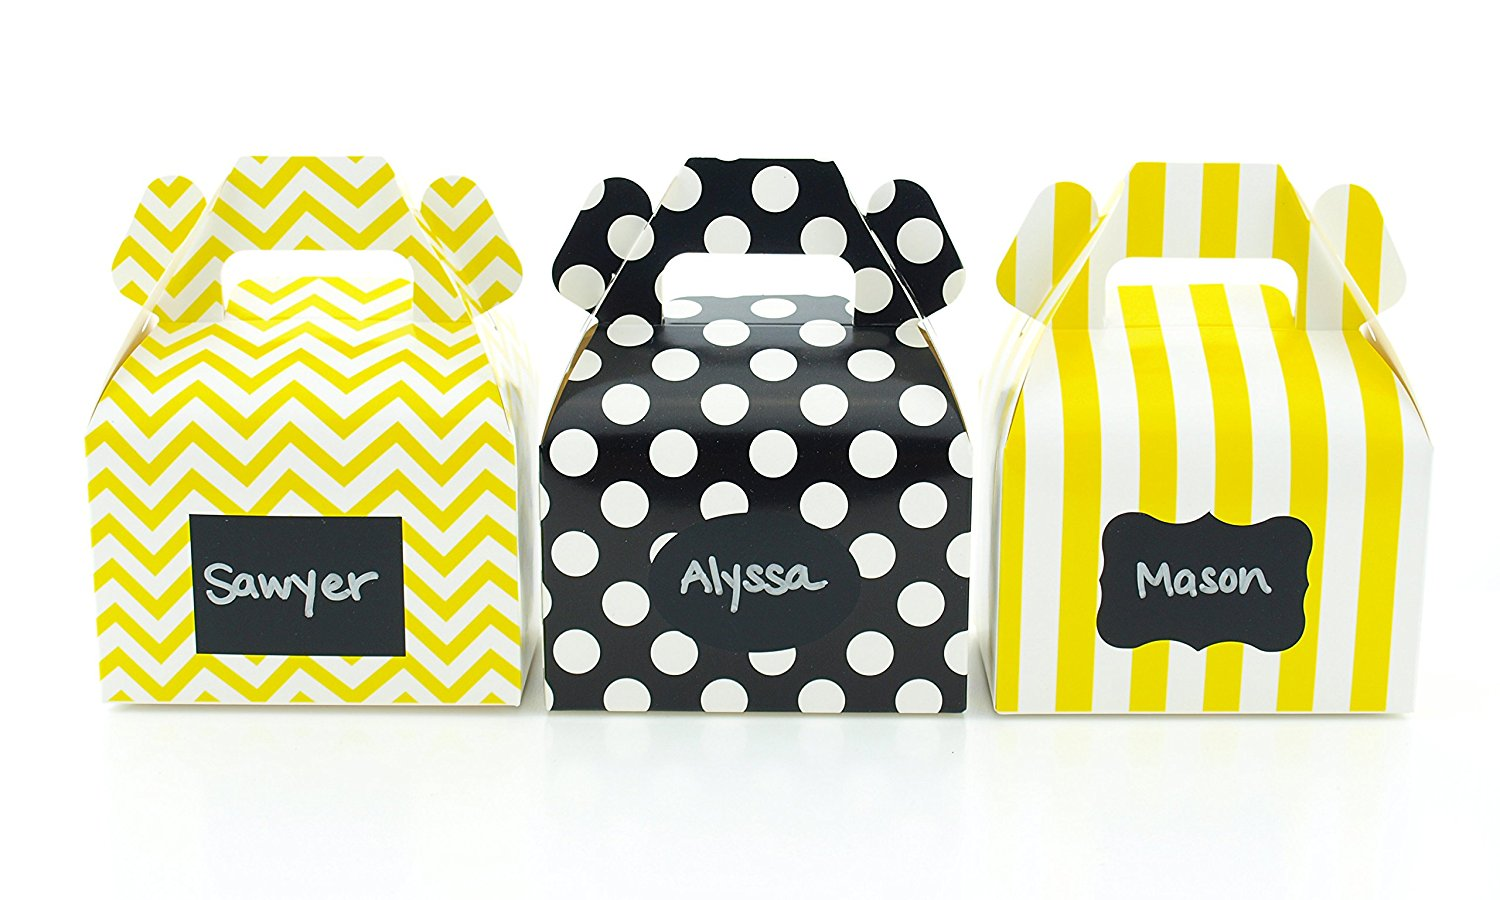 Bumblebee Party Favor Boxes & Black Label Chalkboard Vinyl Stickers (36 Pack) - Yellow & Black Bumble Bee Party Decorations, Birthday Favor Candy Boxes, Honey Bee Party Supplies